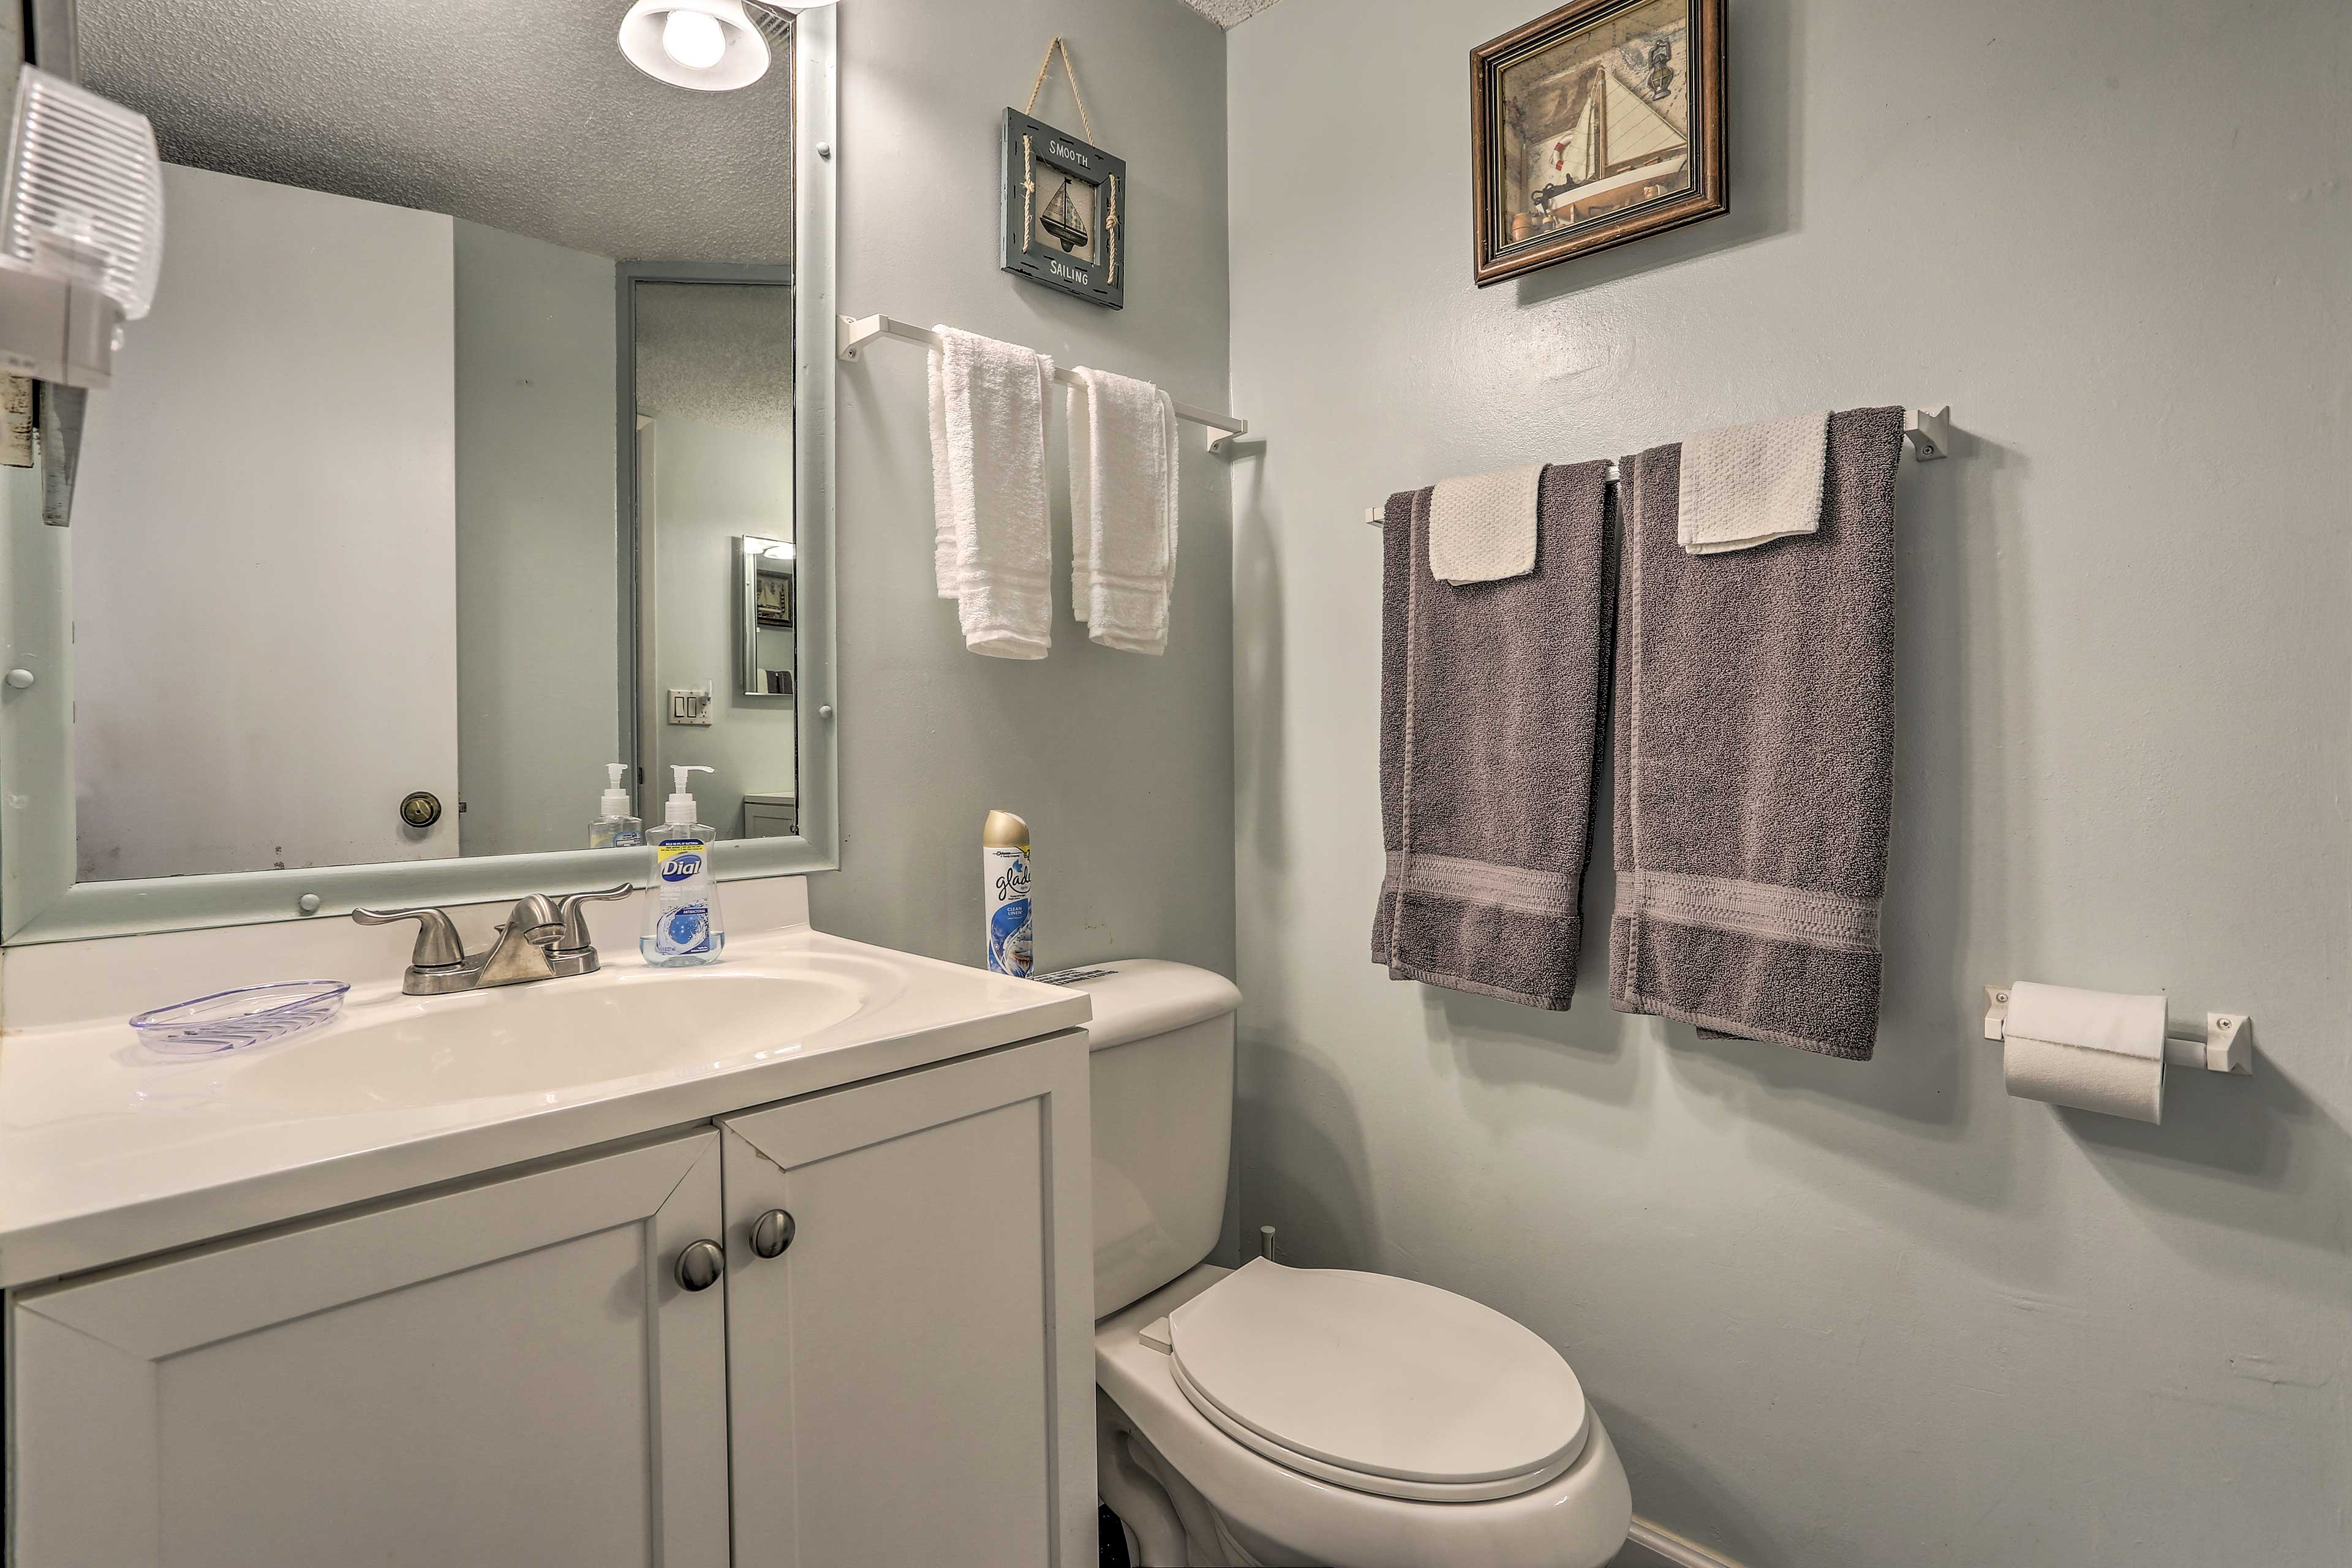 The second bathroom features a walk-in shower.